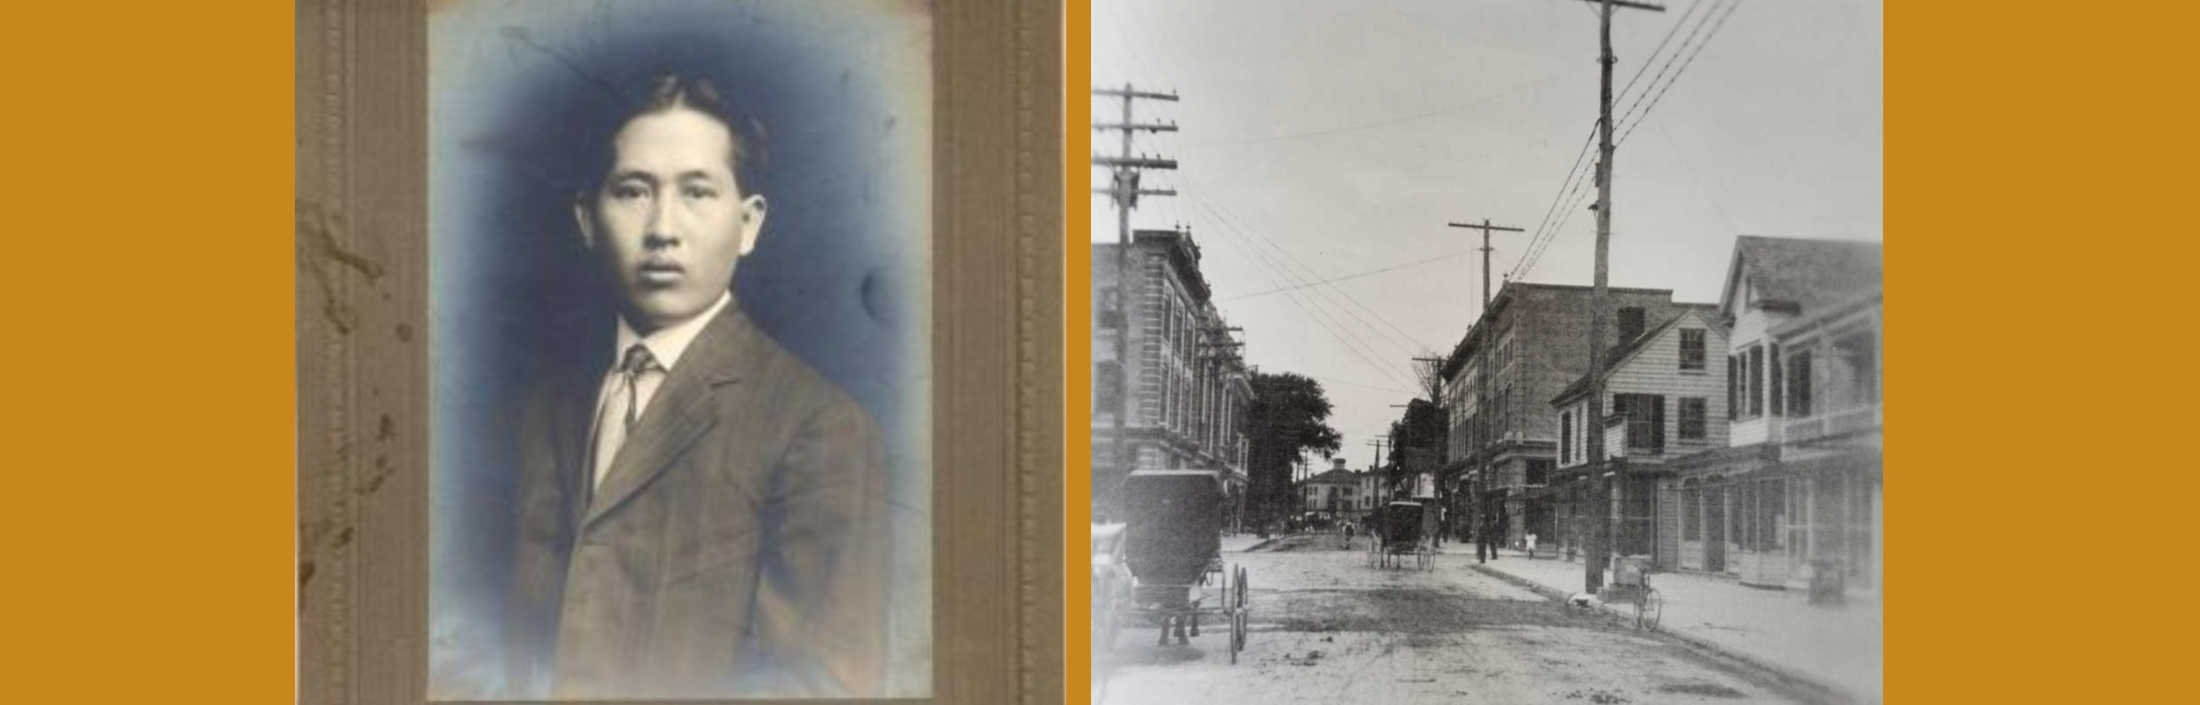 A Delmarva Town's Unlikely Love Affair with a Chinese Laundryman, Early 1900s